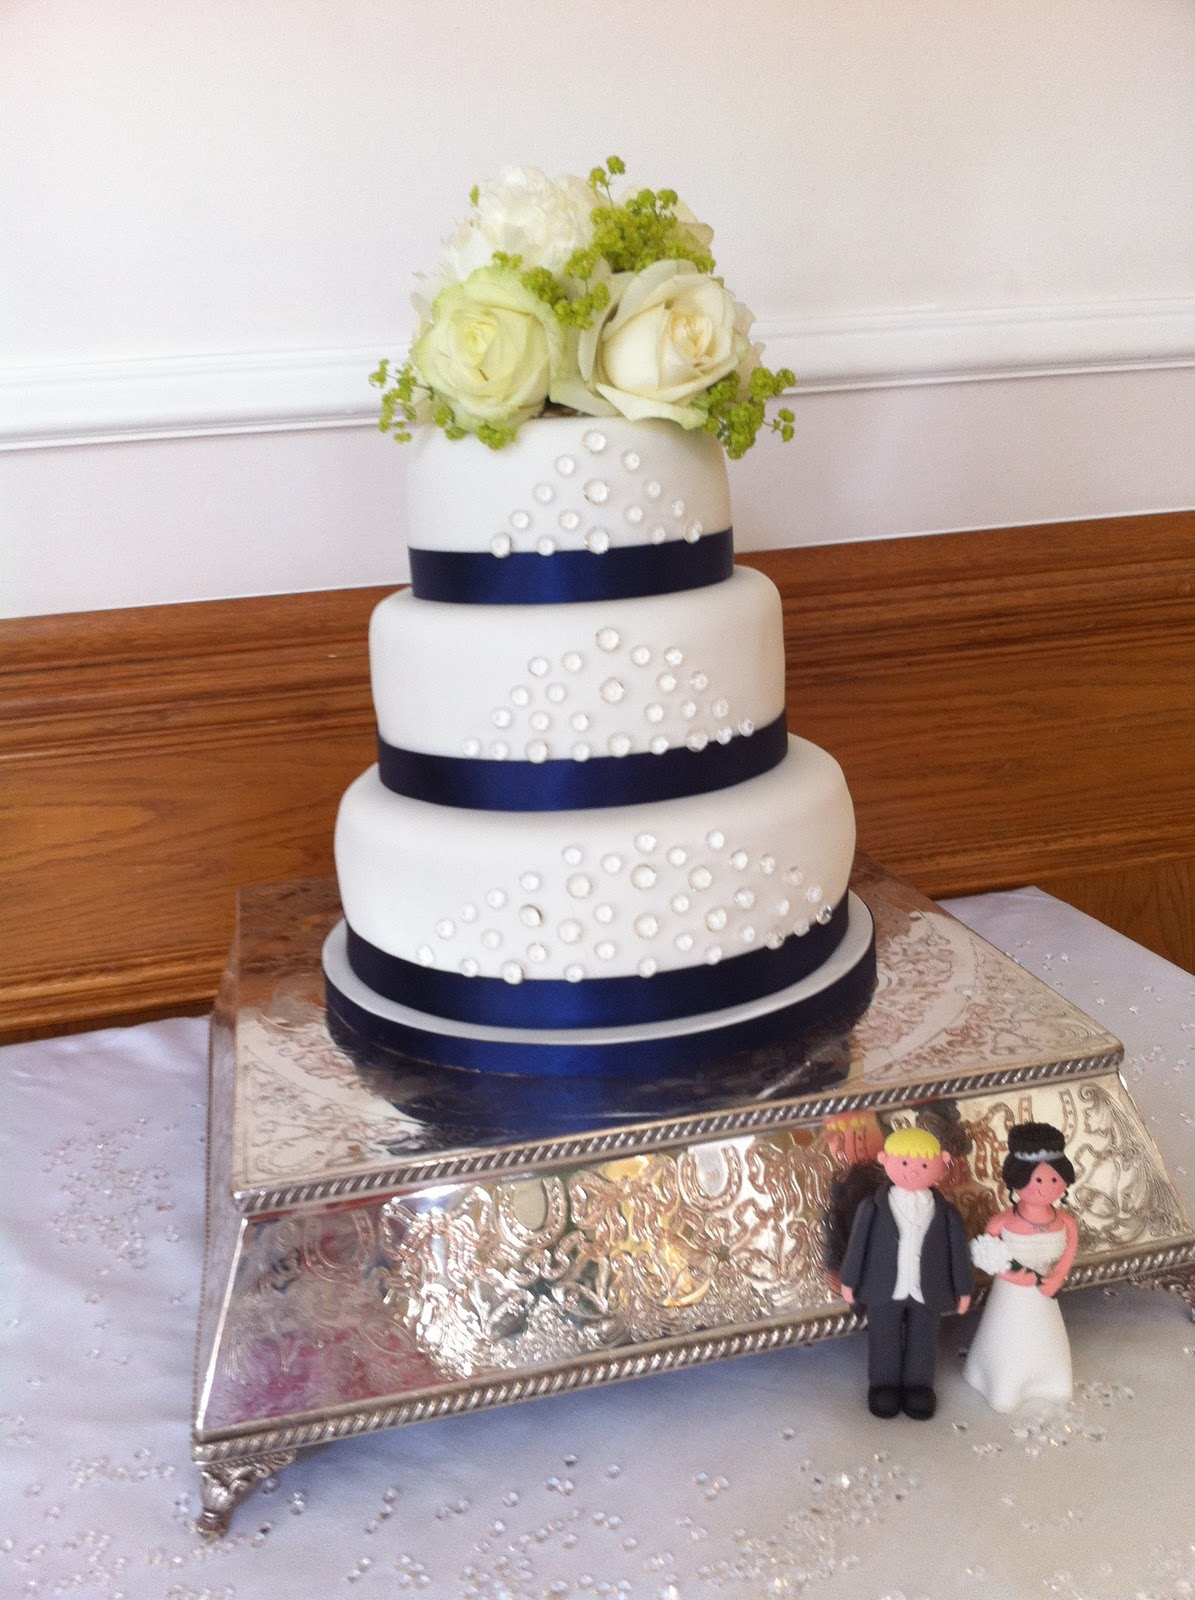 All Of The Above Designs Can Be Made For You By Janet At Delicakes Book A Design Taste Session Email Today Wedding Cakes Should Booked 6 Months In